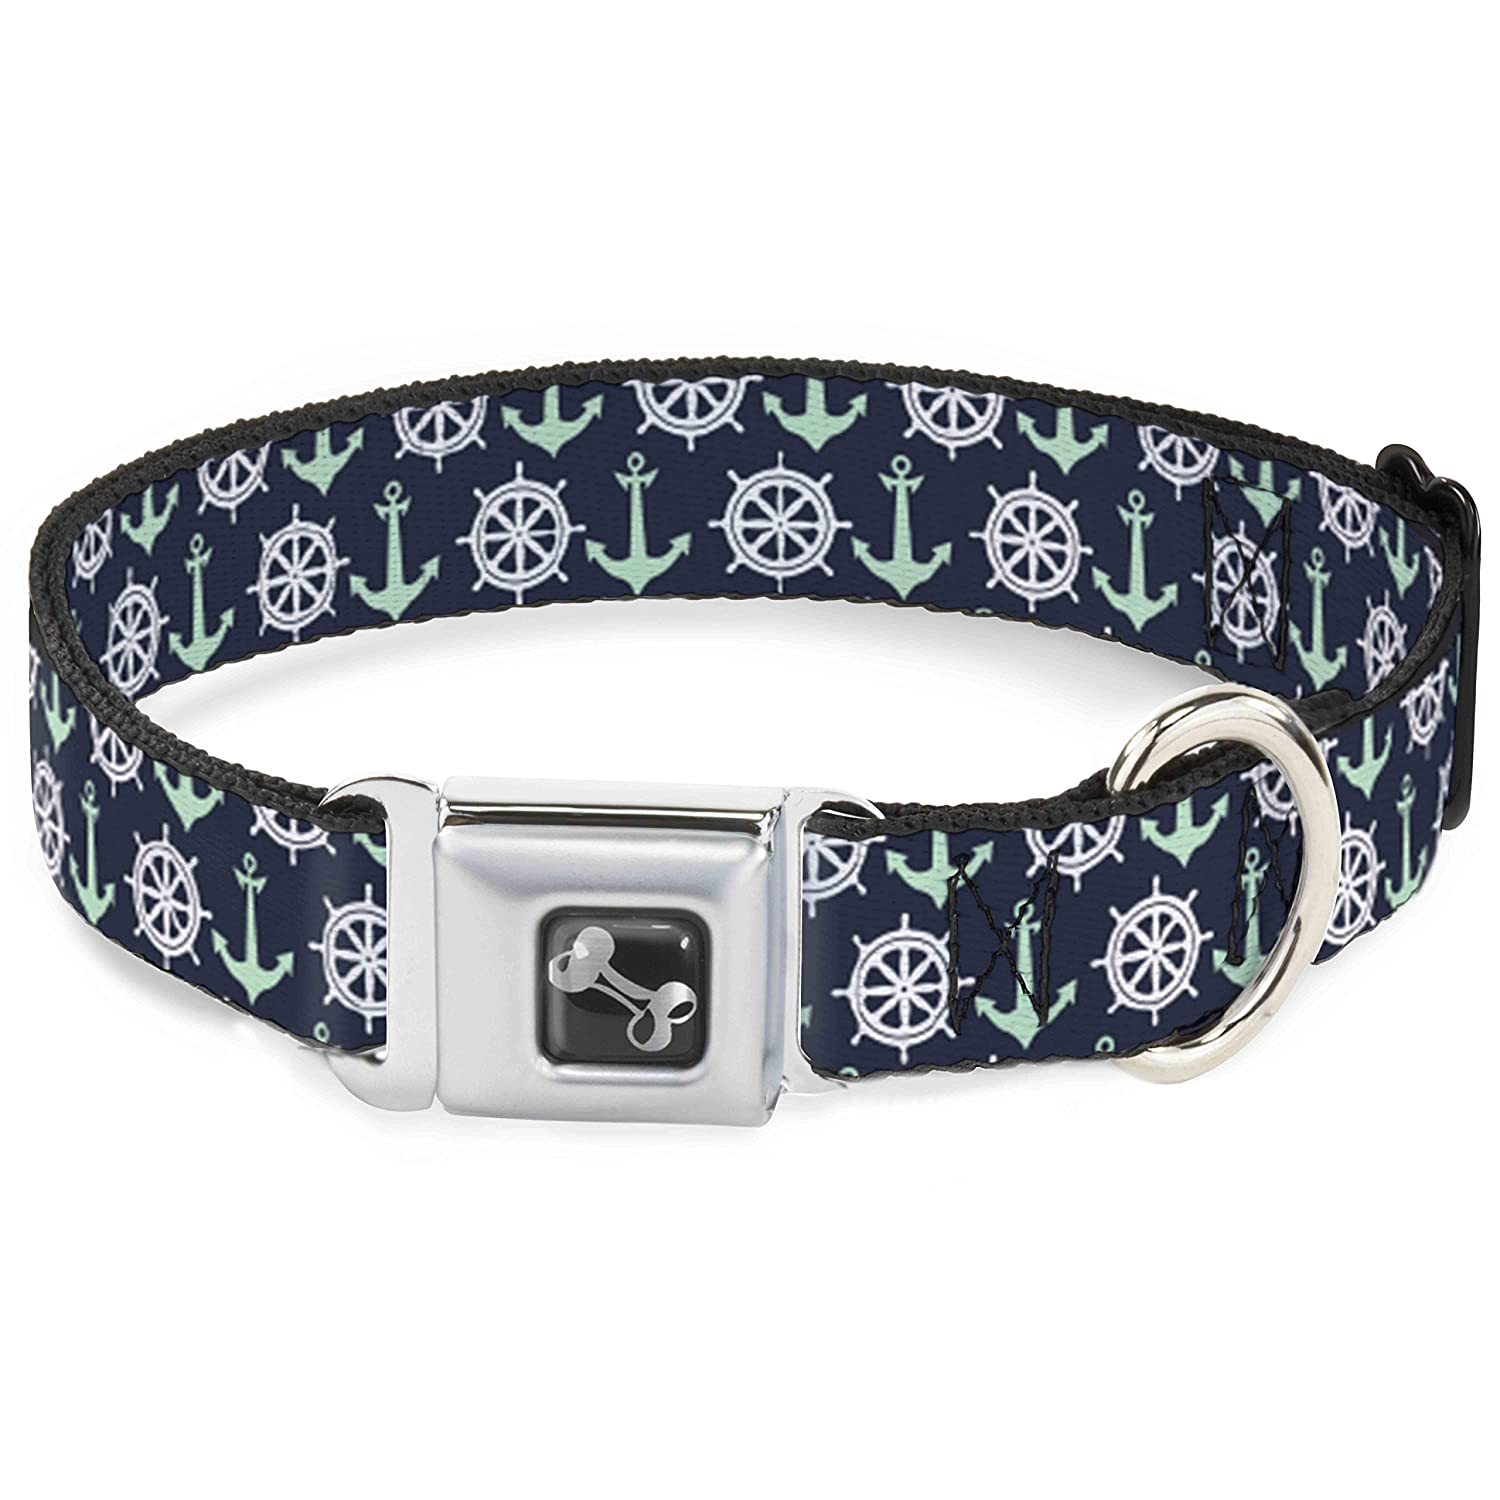 Buckle-Down DC-W30181-WS Anchor2 Helm Monogram Navy Turquoise White Seatbelt Dog Collar, Small